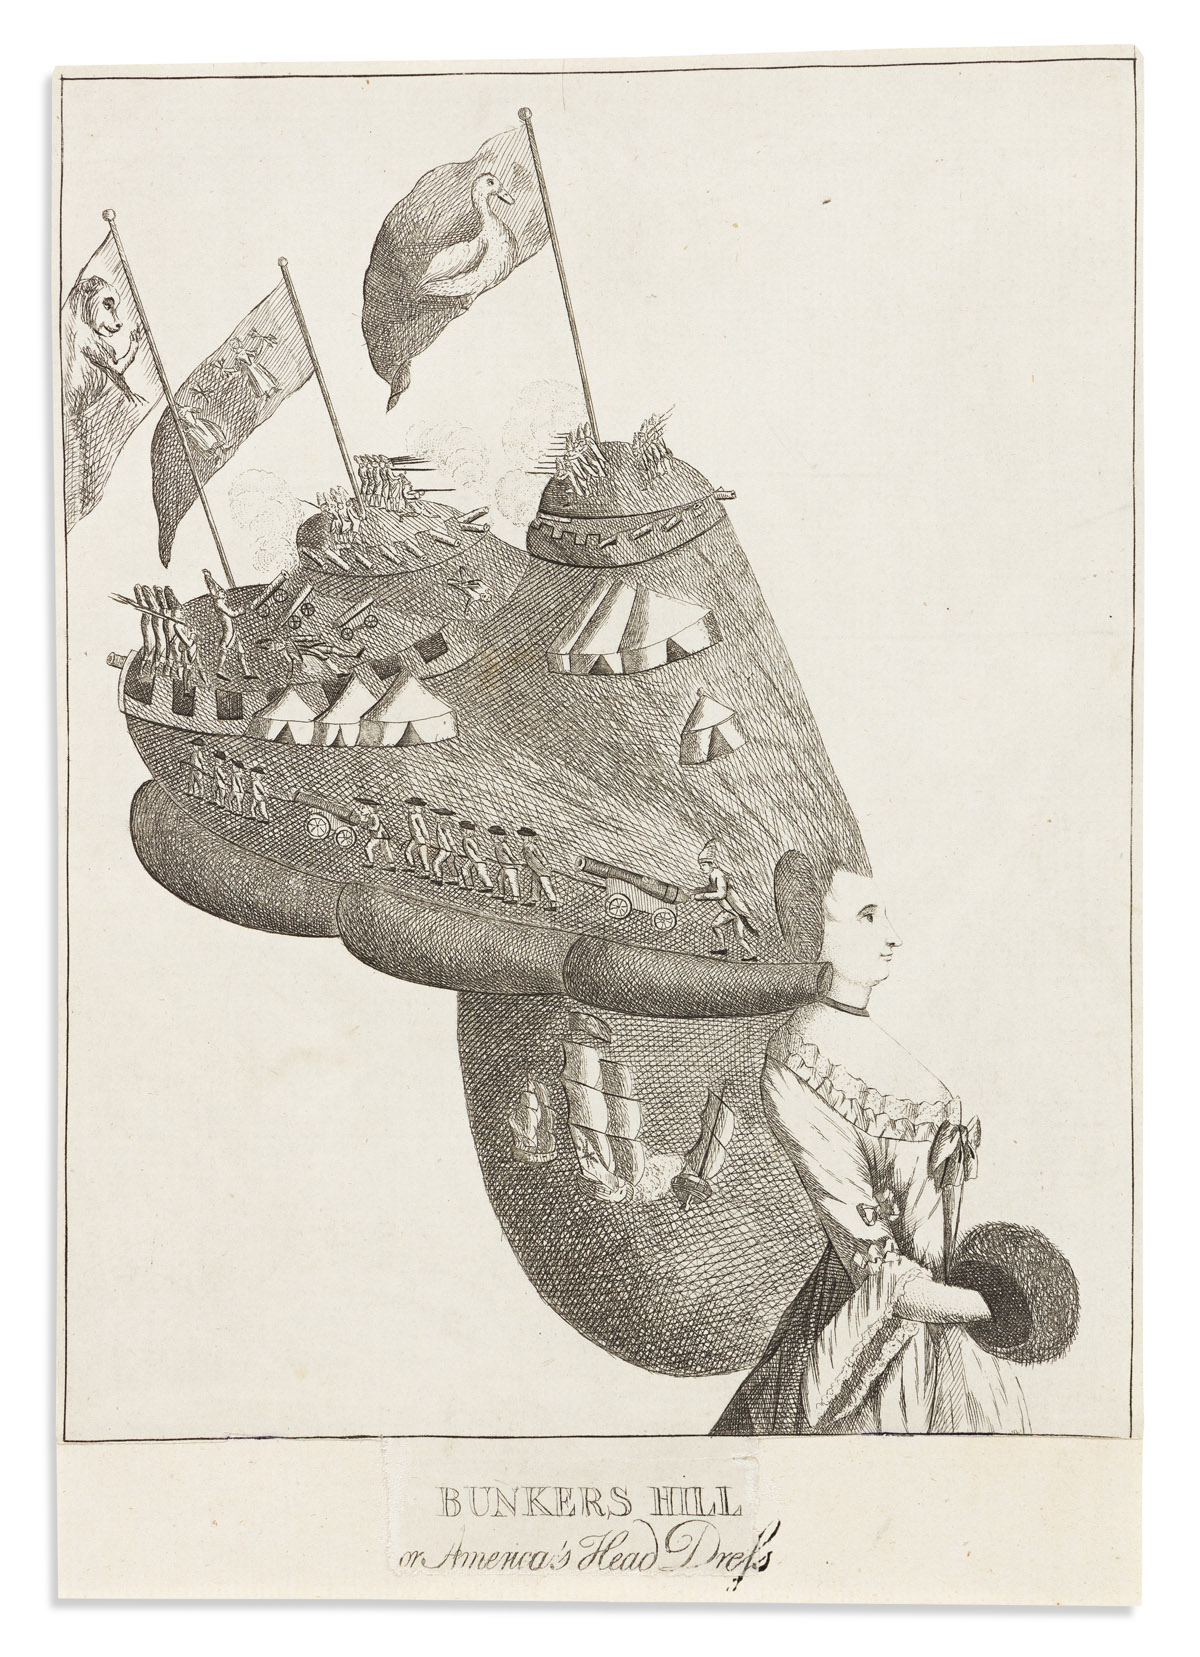 (AMERICAN REVOLUTION--1776.) [Matthew & Mary Darly], artists. Bunkers Hill, or Americas Head Dress.